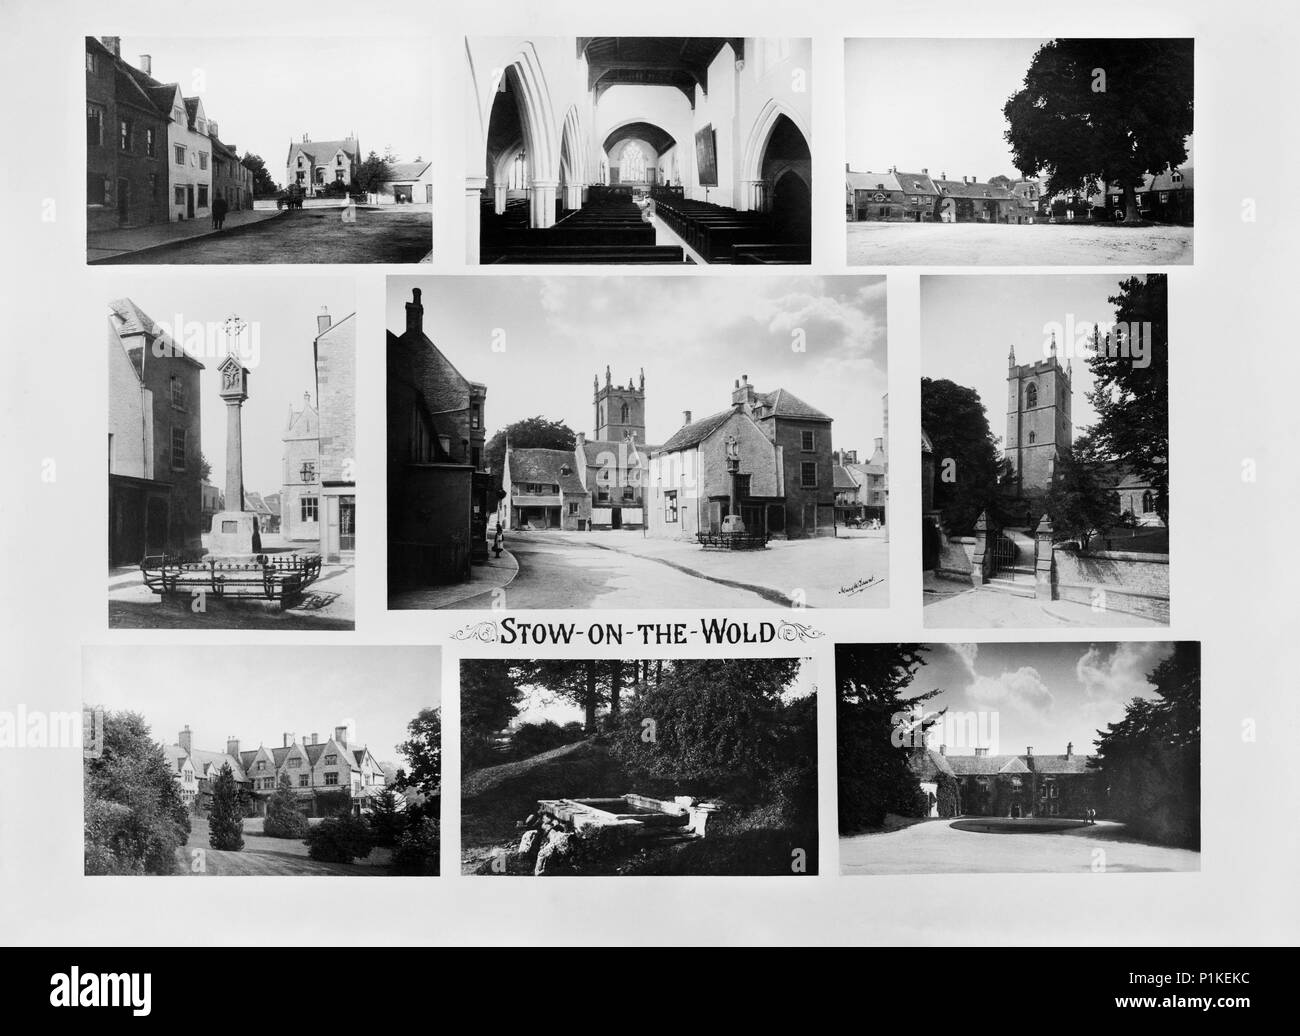 Stow-on-the-Wold, Gloucestershire, 1890. A composite of nine views of the town with the market place and medieval cross at the centre. All images were - Stock Image